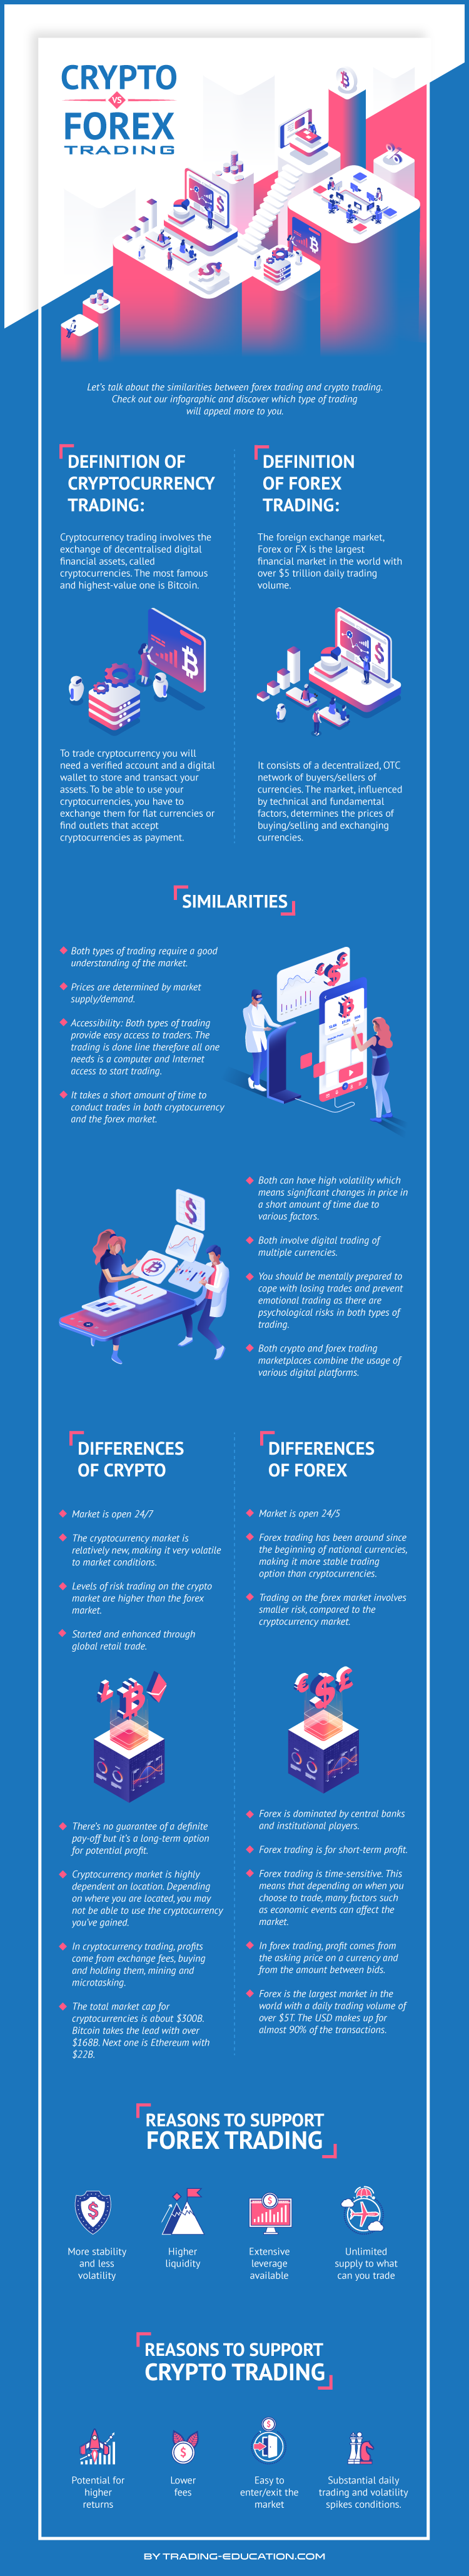 crypto trading vs forex trading infographic